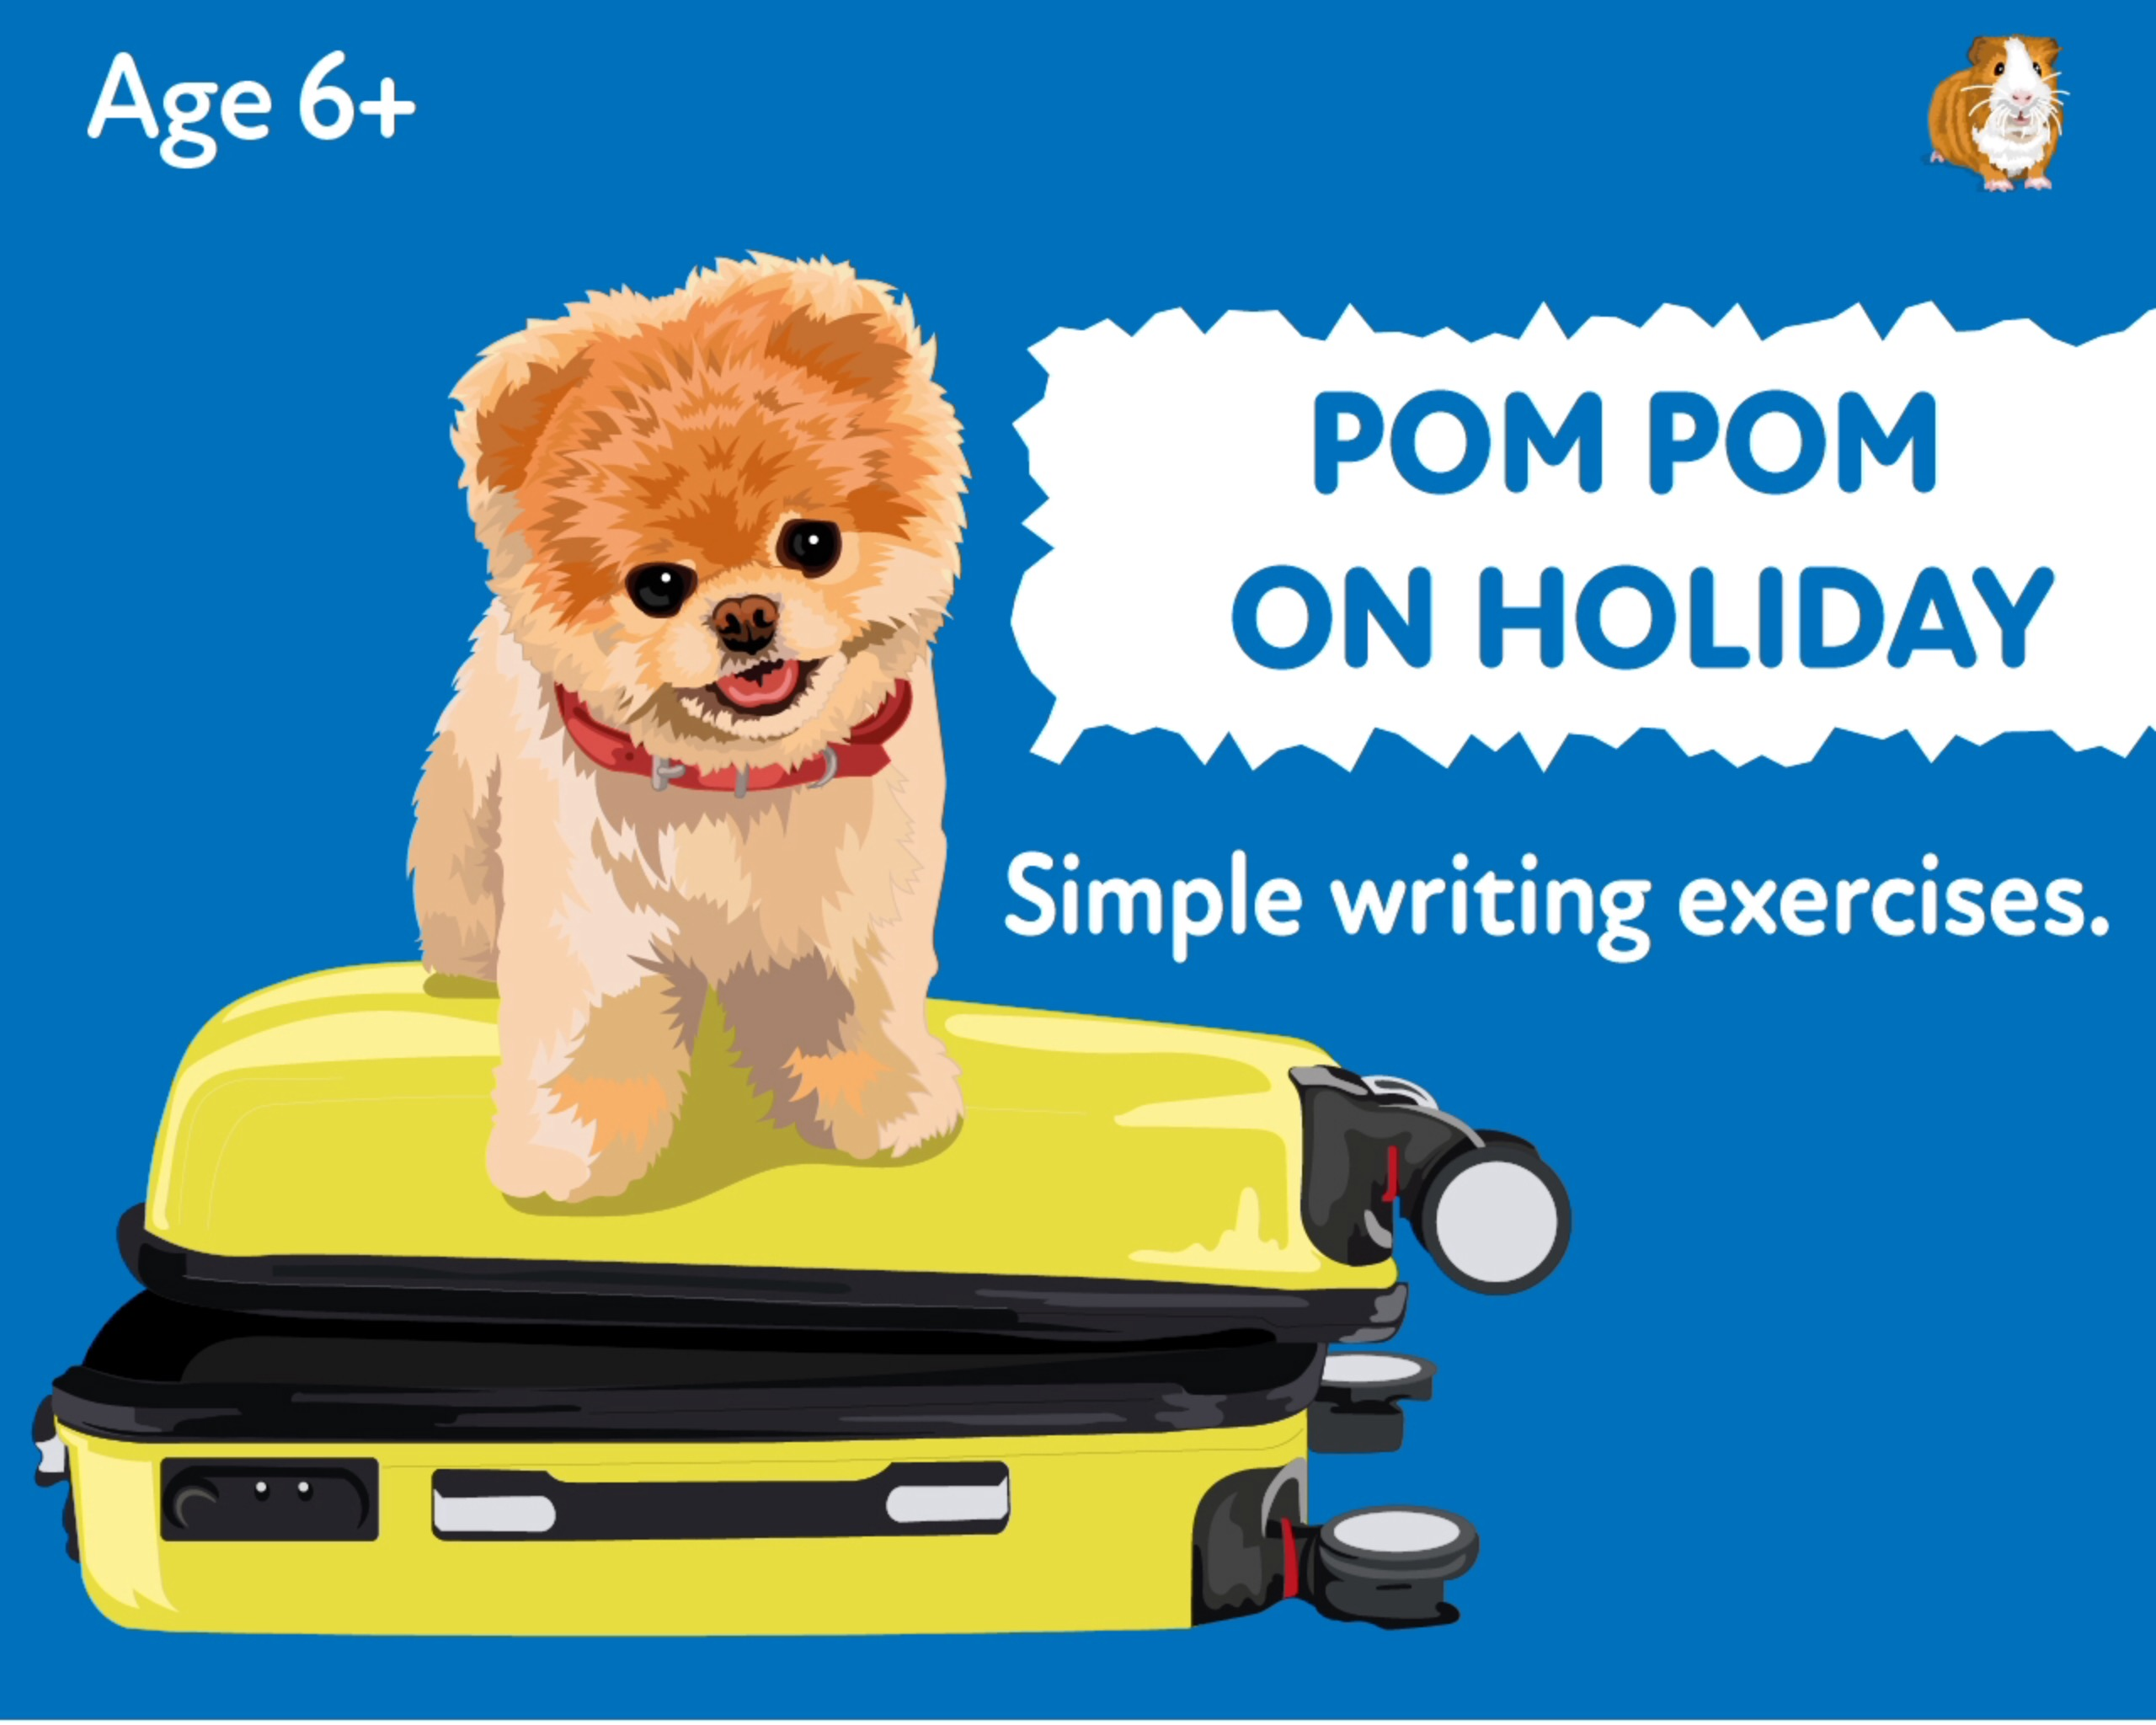 'Pom Pom Goes On Holiday' A Fun Writing And Drawing Activity (6 years +)